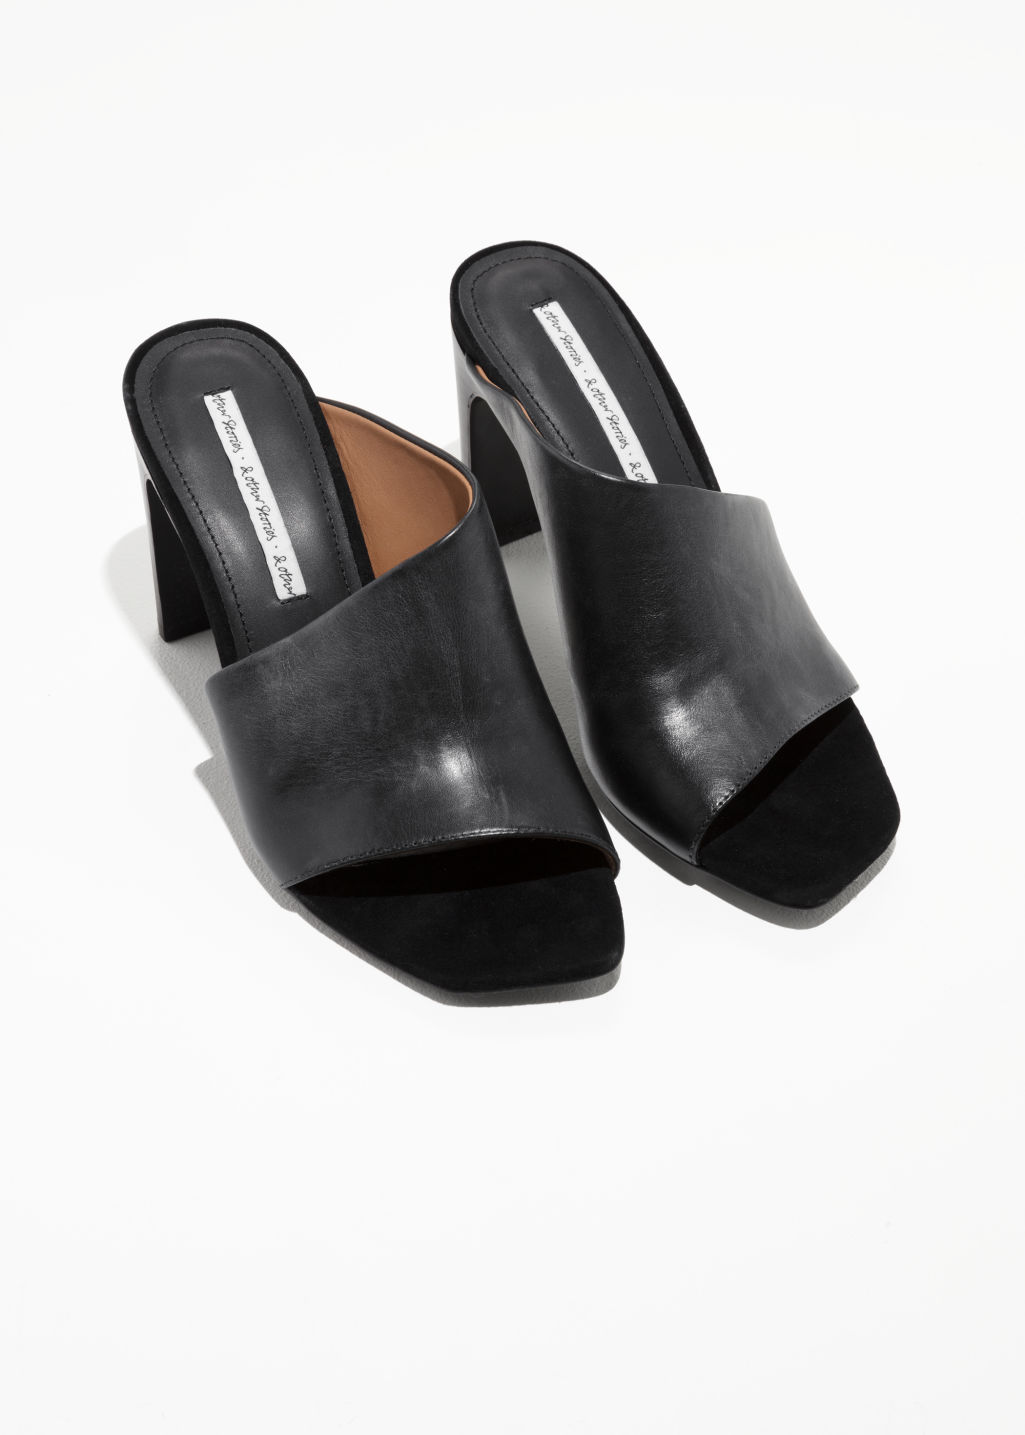 & OTHER STORIES Asymmetrical Open Toe Pumps KflX8S